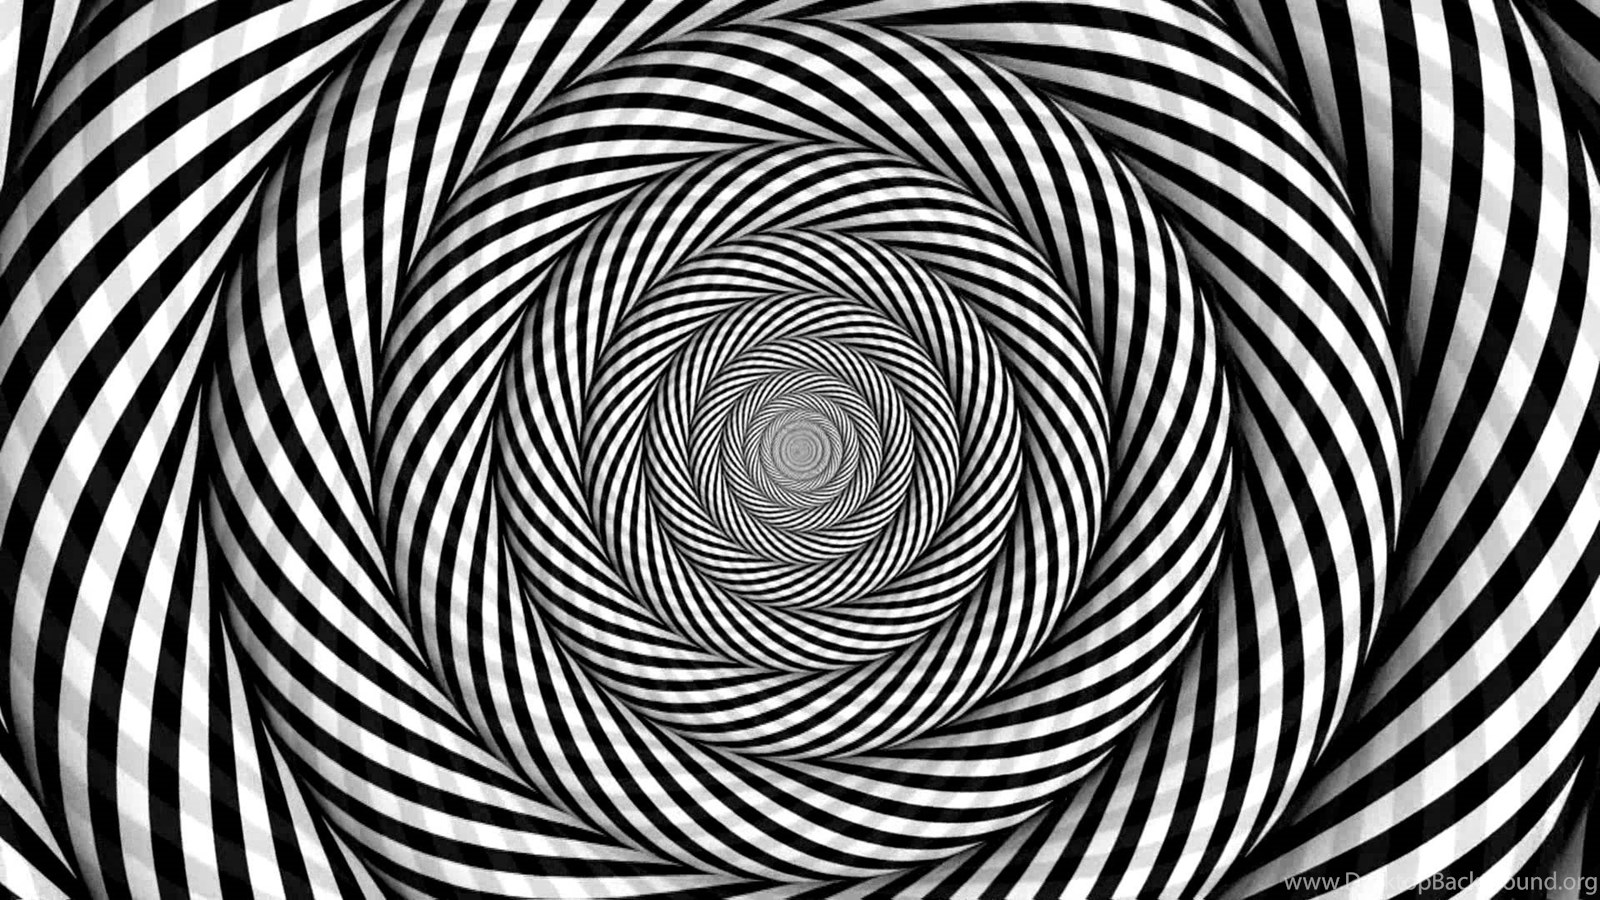 optical illusion eye trippy trick illusions background desktop things drawings 3d crazy ultra stare